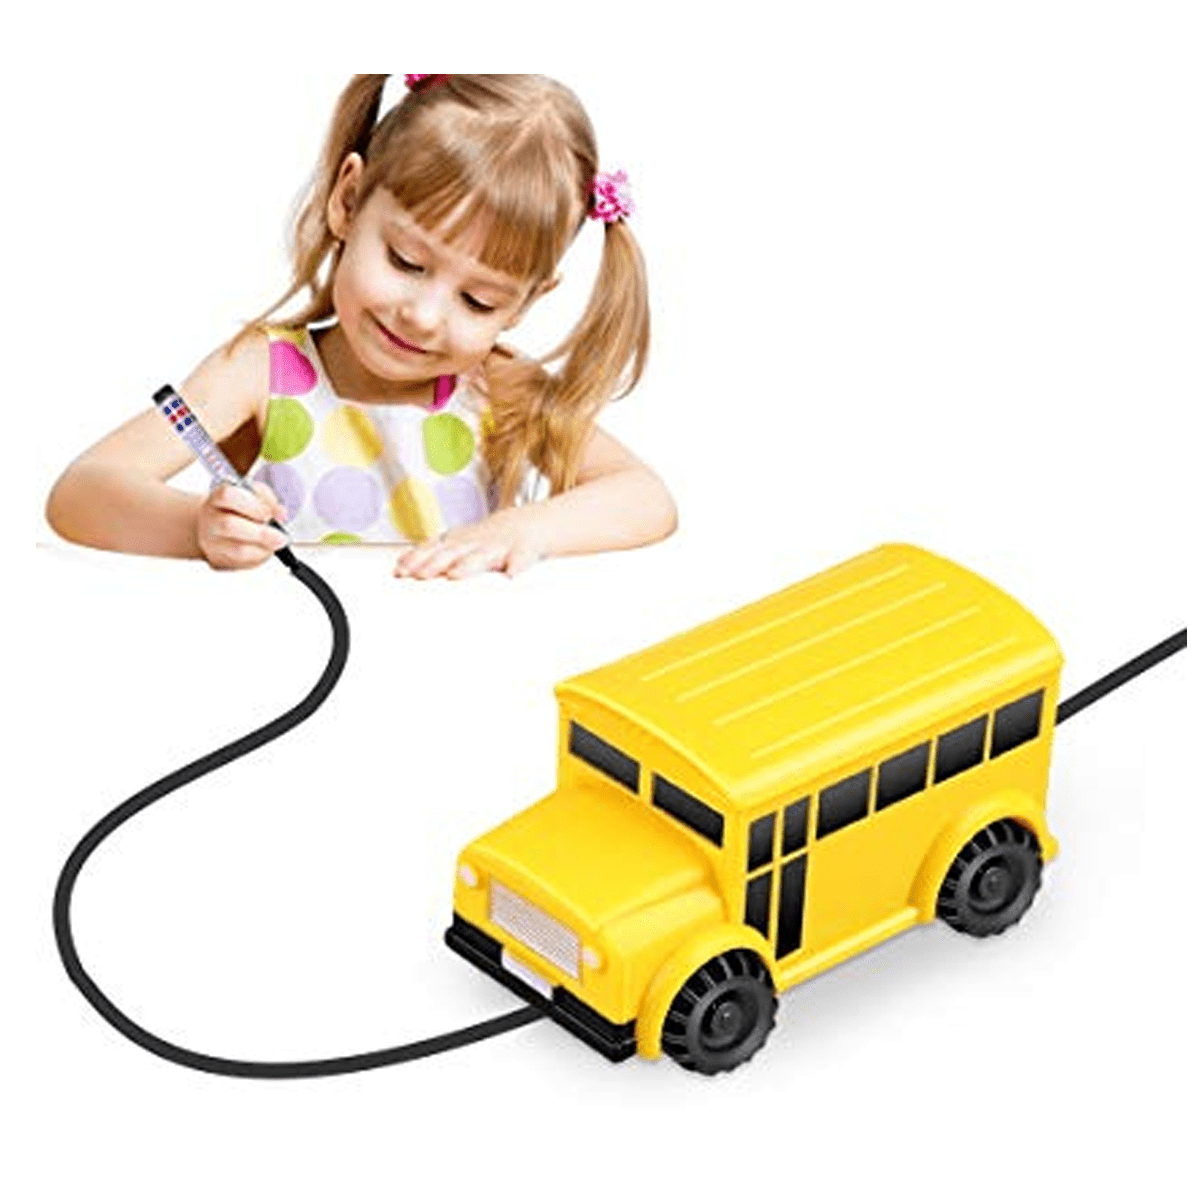 Inductive Train Toy Magic Mini Car Follow Drawn Black Line for Kids (School Bus)